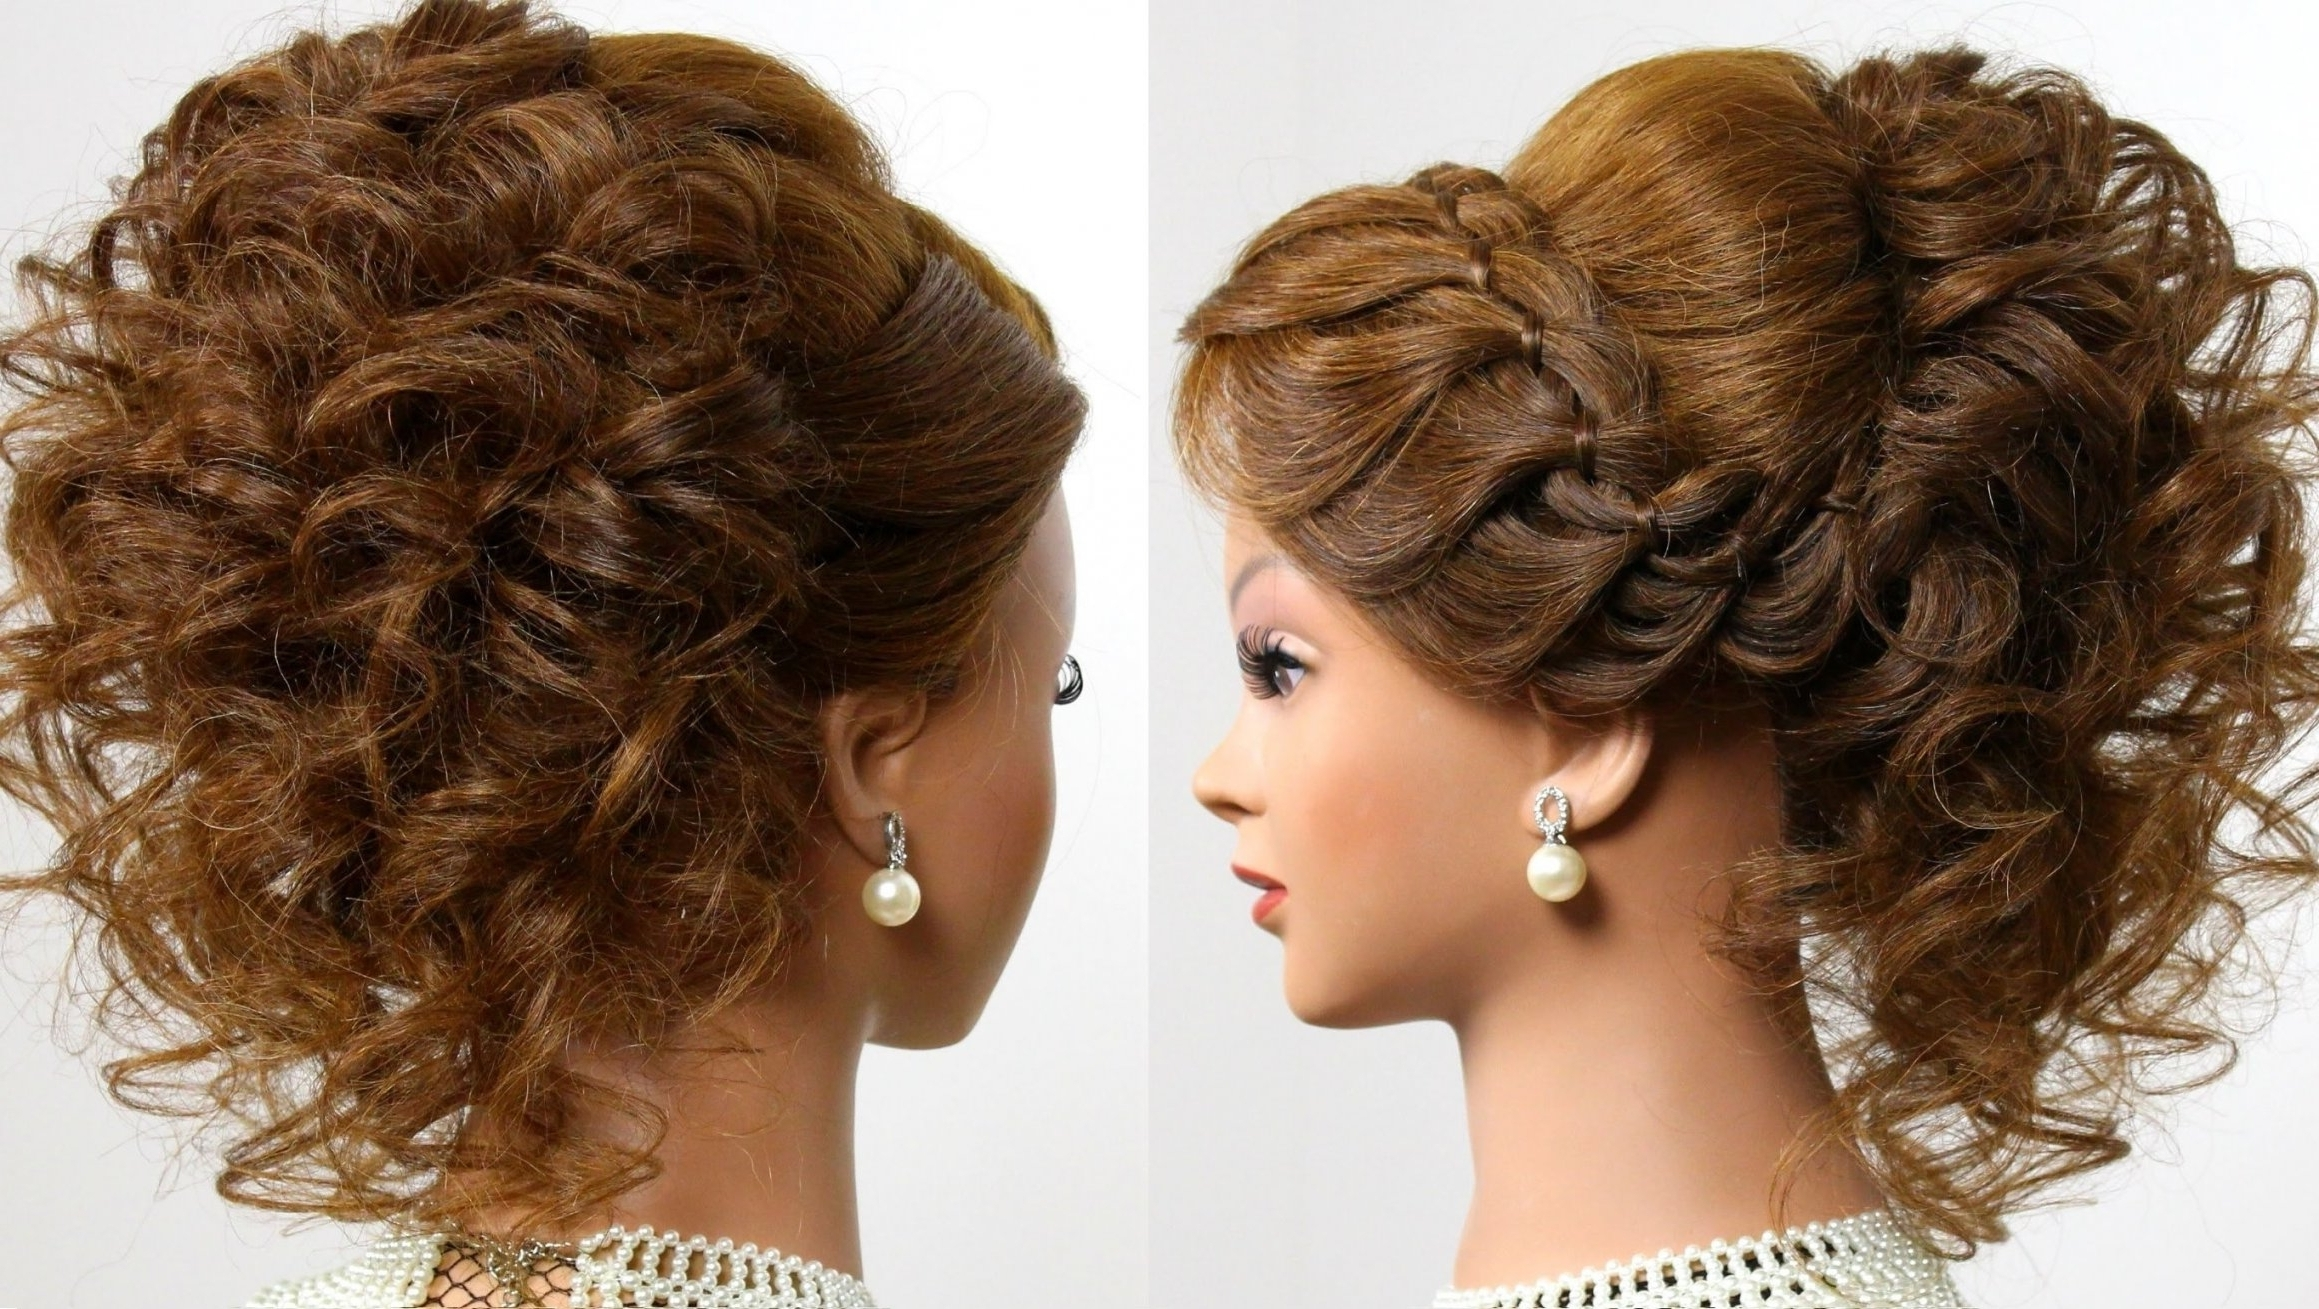 Updos For Medium Hair Prom Medium Hair Updo Hairstyles For Prom Pertaining To Prom Updo Hairstyles For Medium Hair (Gallery 8 of 15)